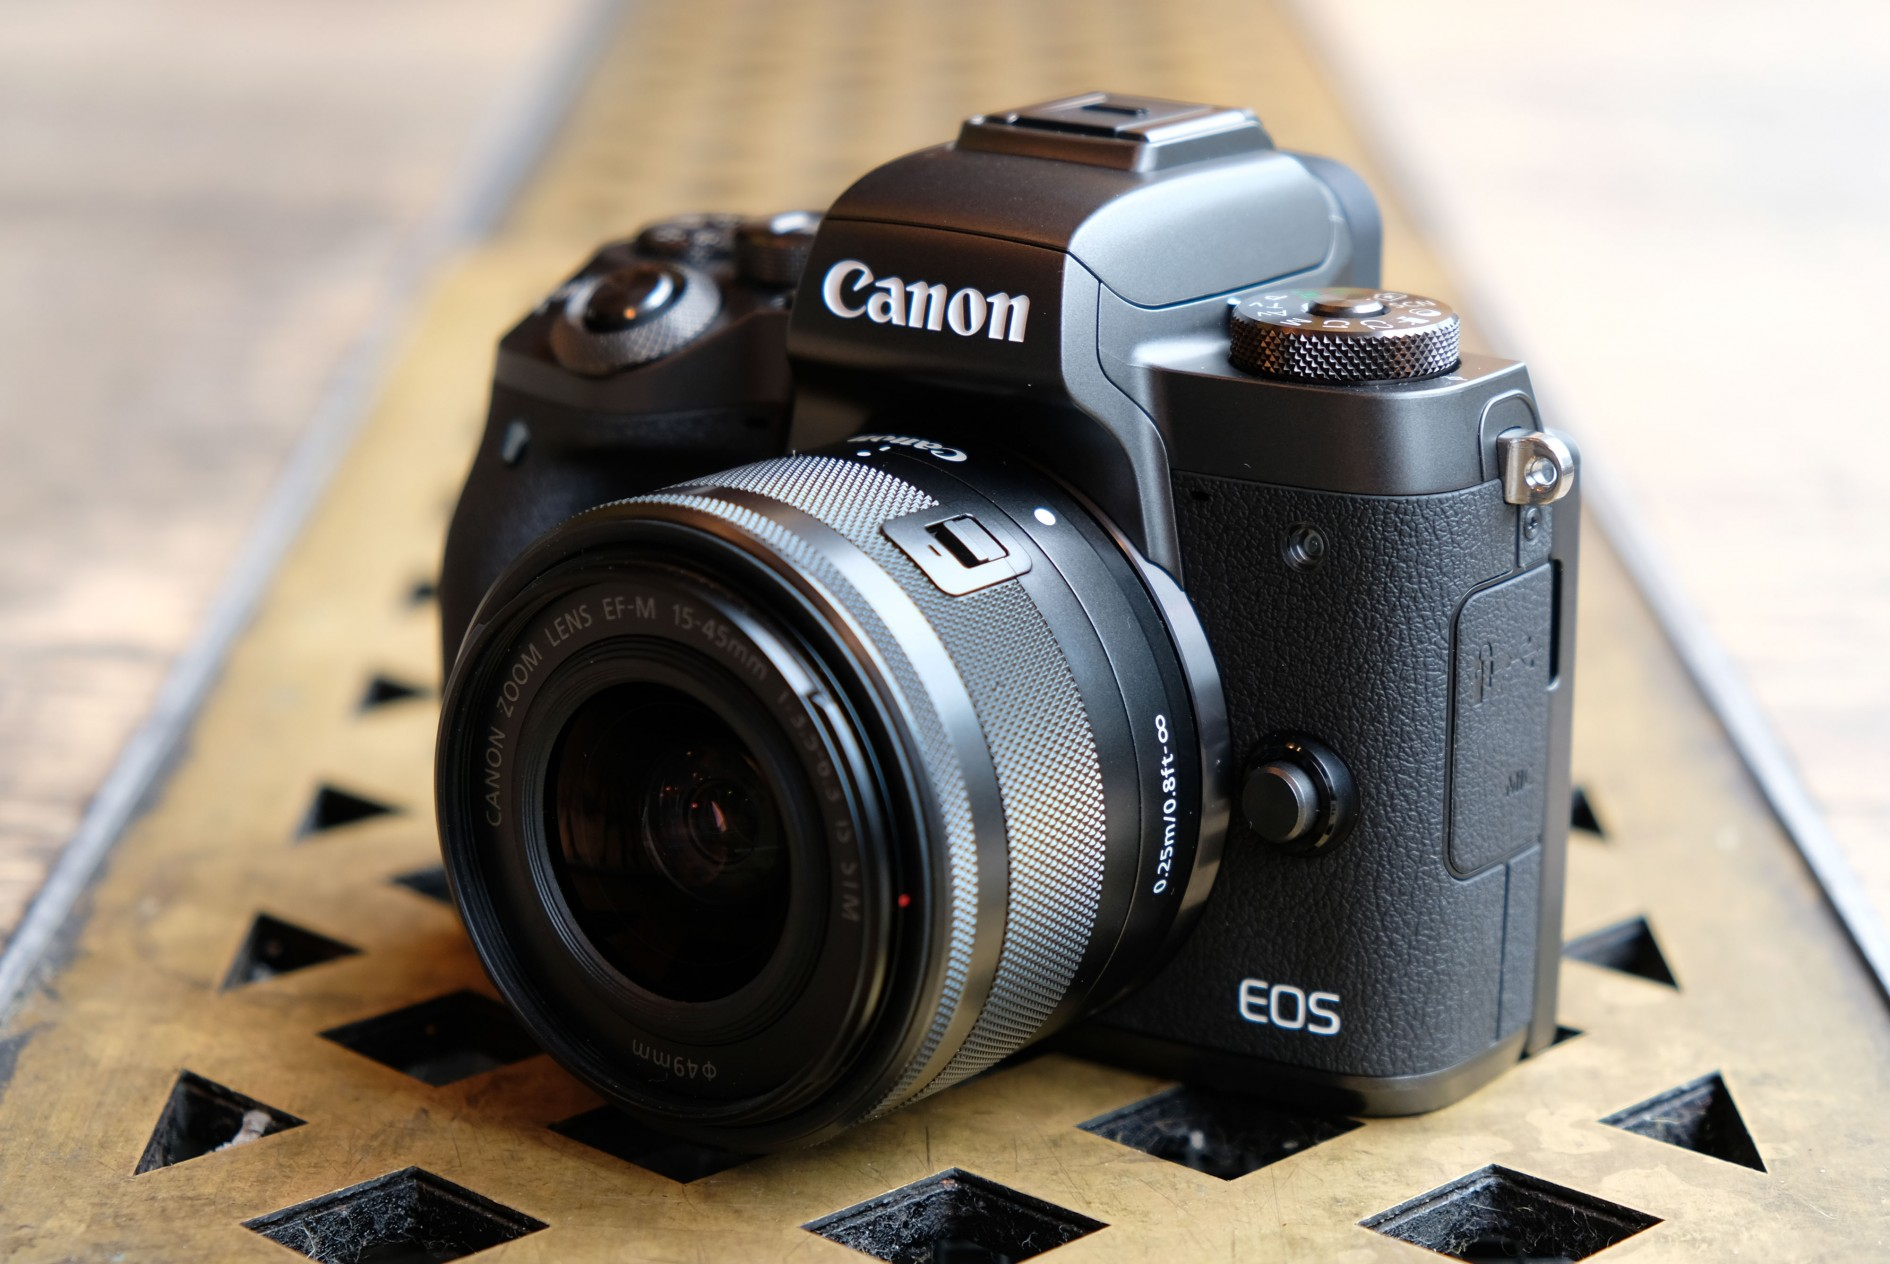 EOS M5 Mark II, G7 X III, SX740 to be Announced Next ? – Canon Rumors CO